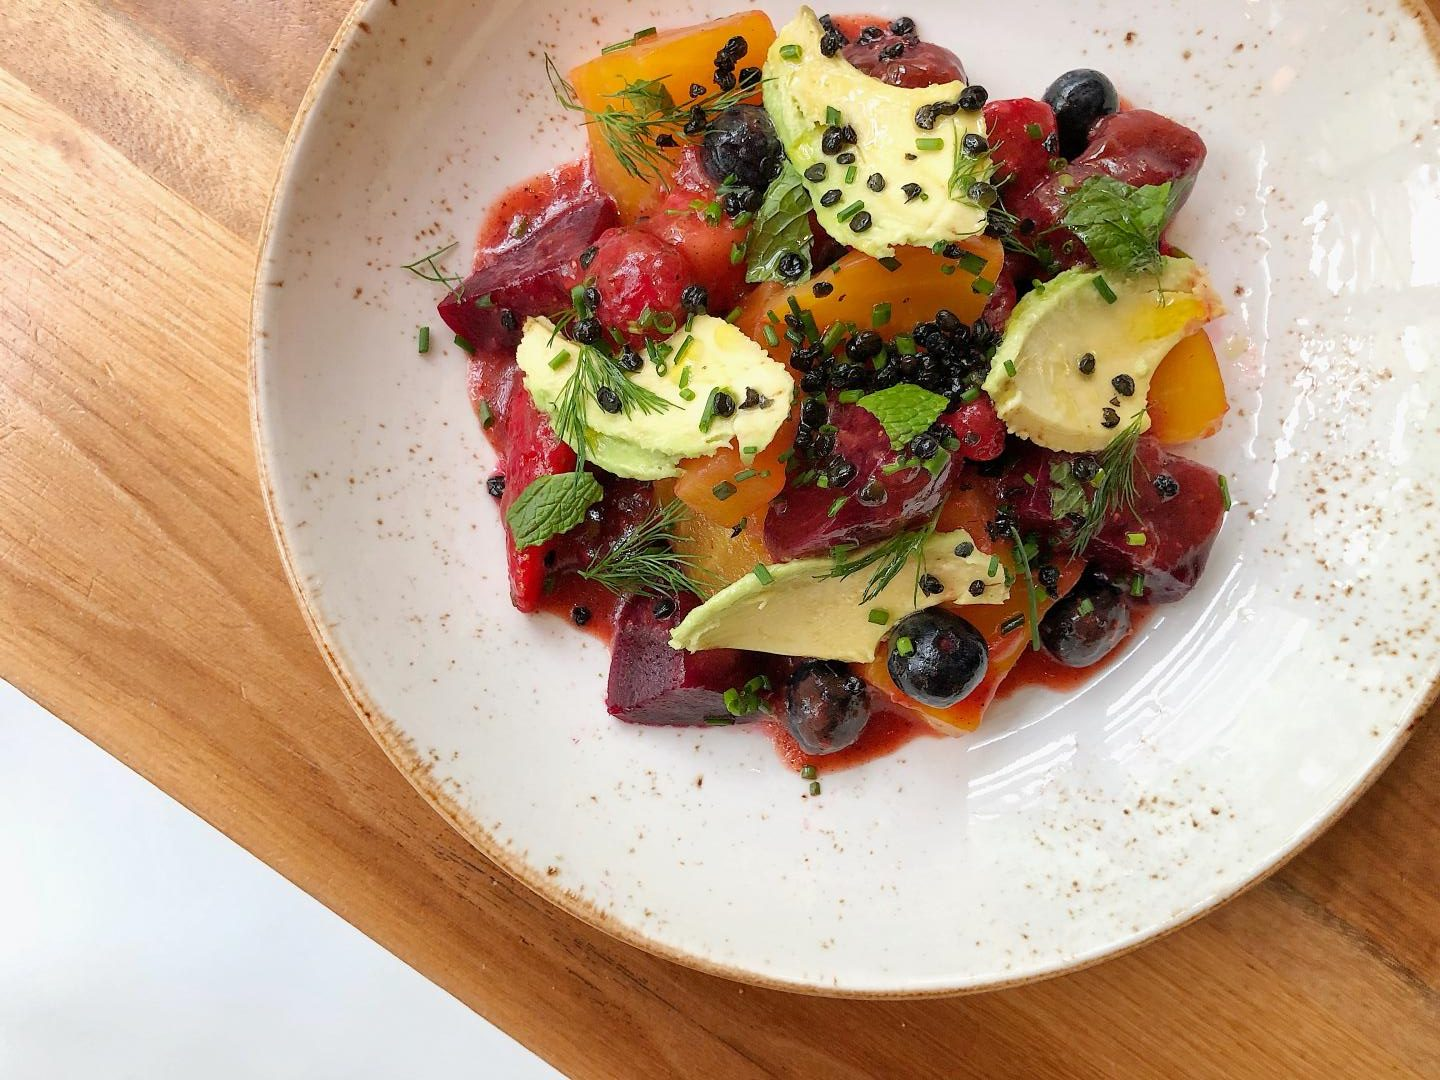 Beets and Berries at Ema